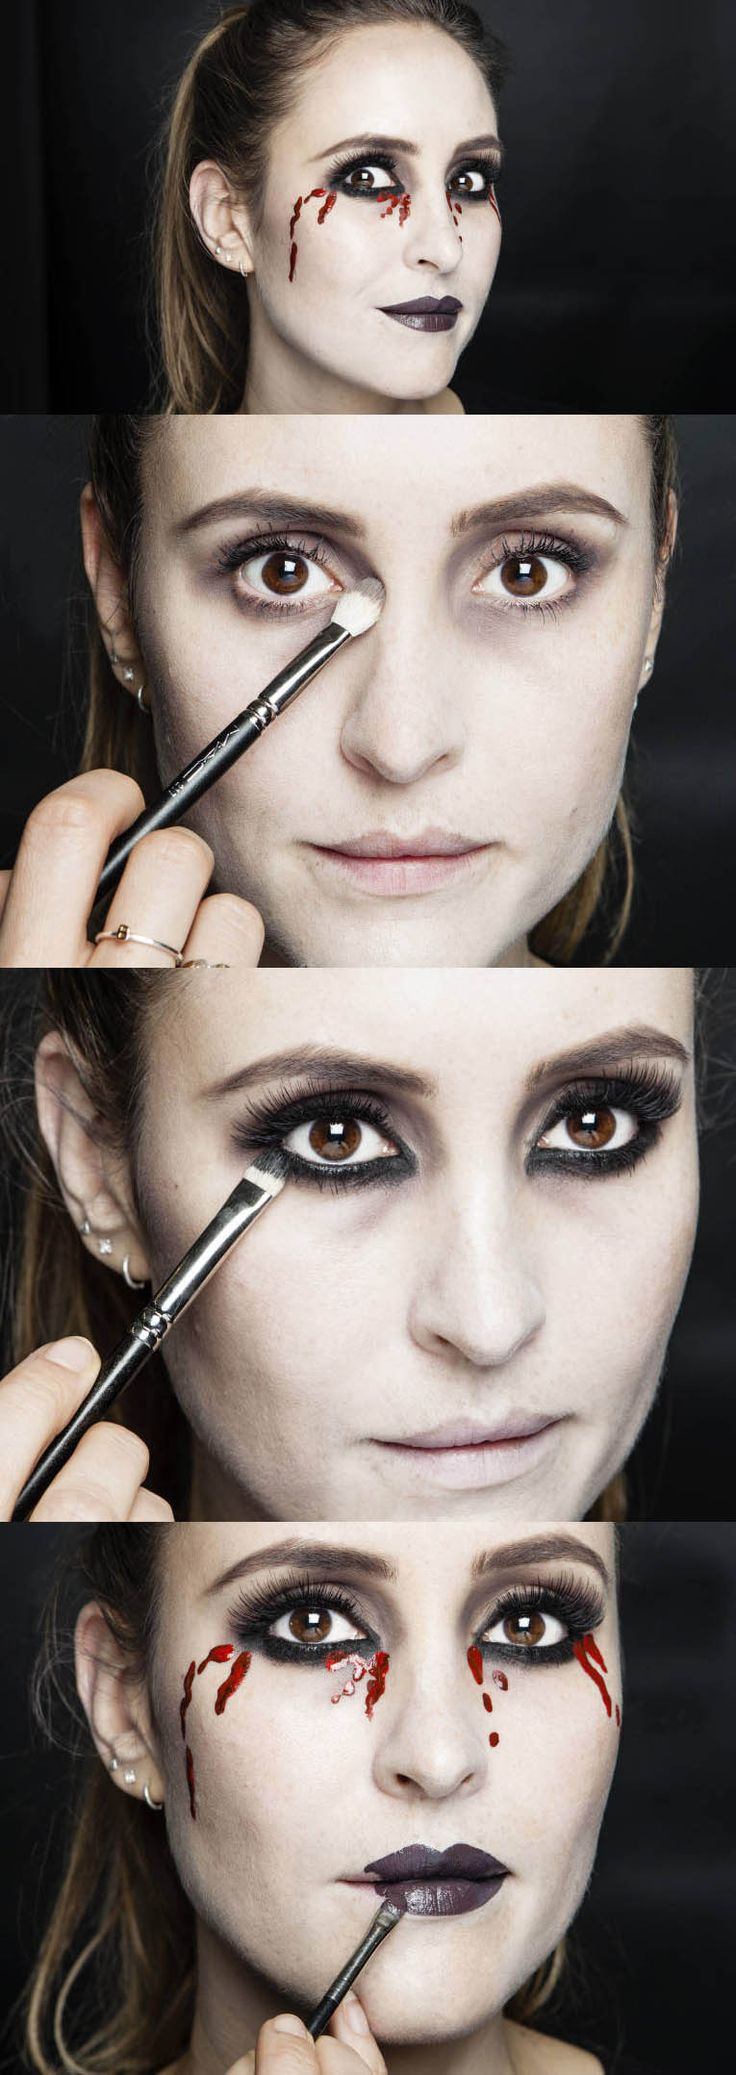 In this step-by-step makeup tutorial of a simple but oh-so effective Halloween look, Cosmo's Online Beauty Editor Bridget shows you (with the help of magic MAC Senior Artist Debbie Finnegan) how to create fake blood tears using makeup. Follow the tips to nail the look yourself for Fright Night. Happy Halloween!